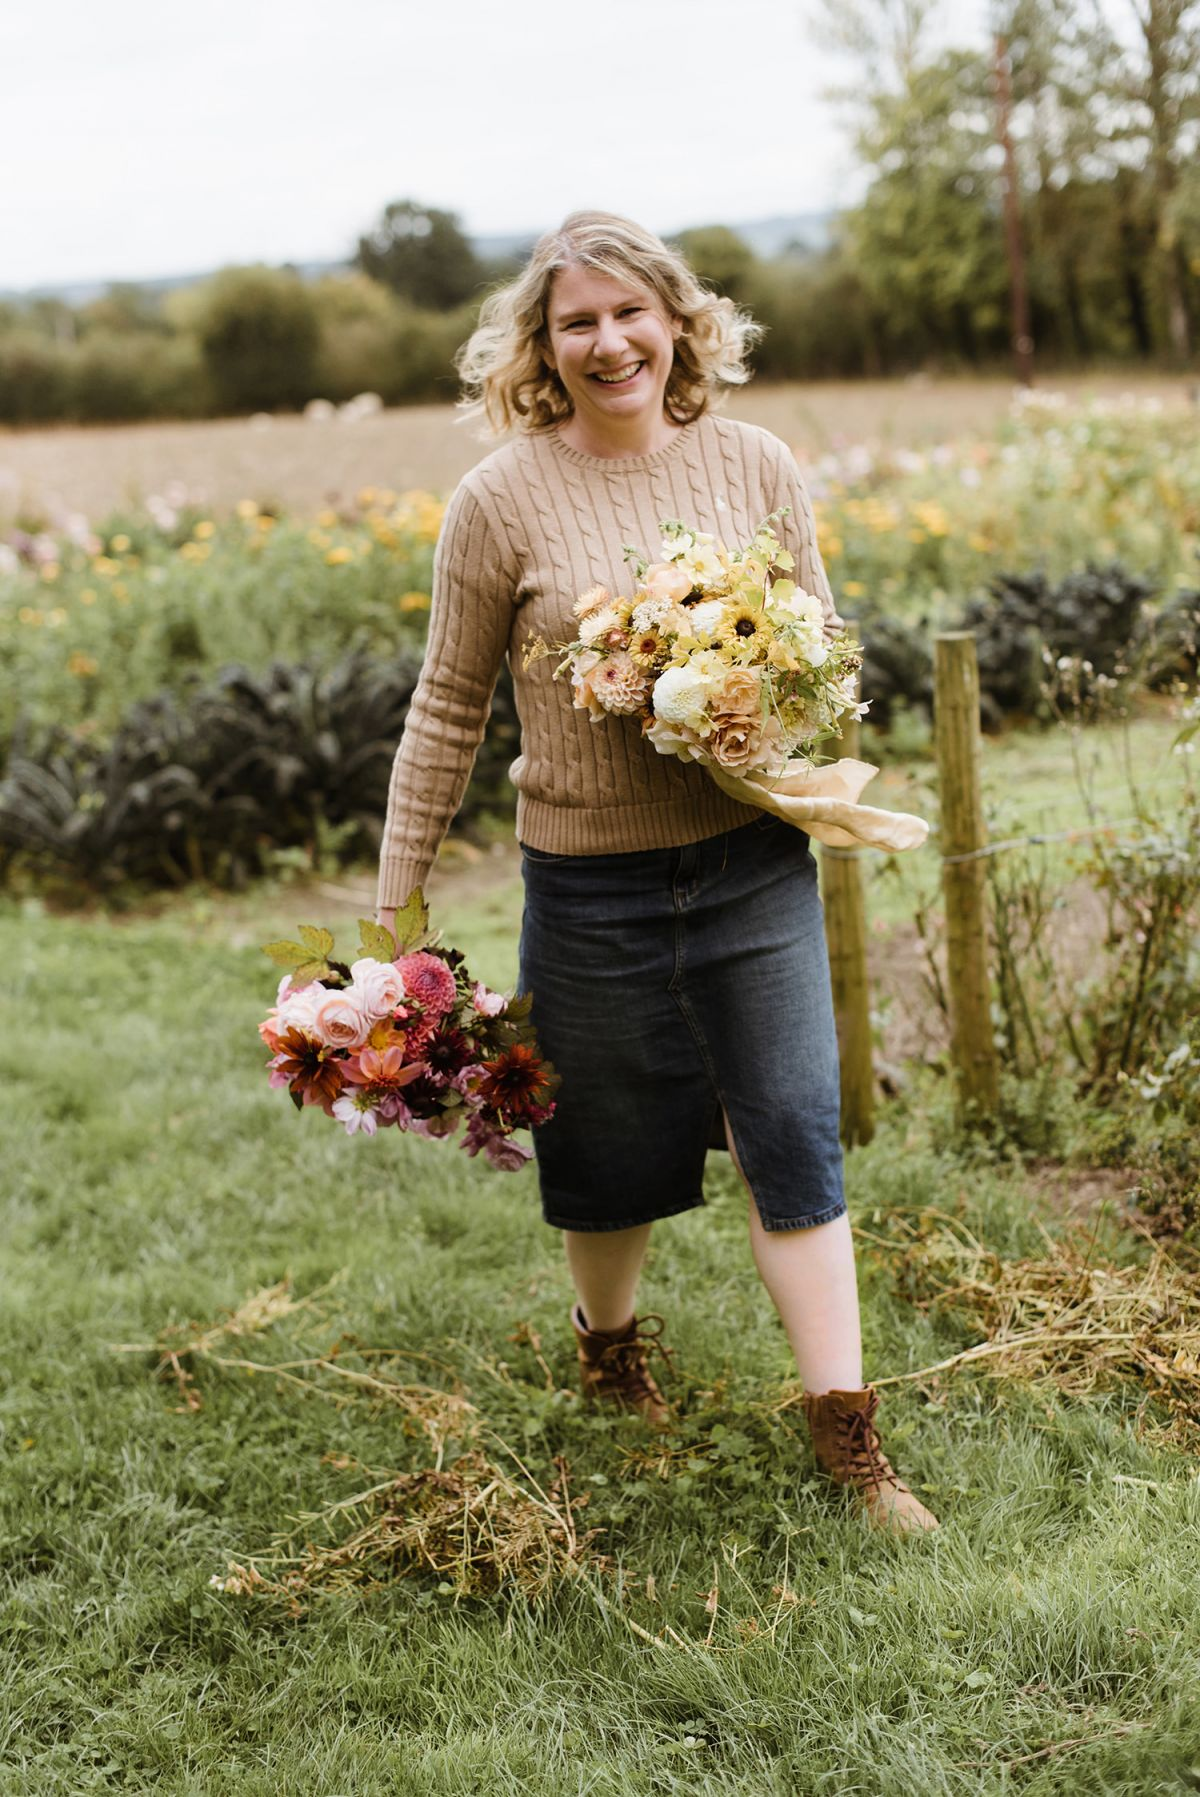 Lady in field with flowers